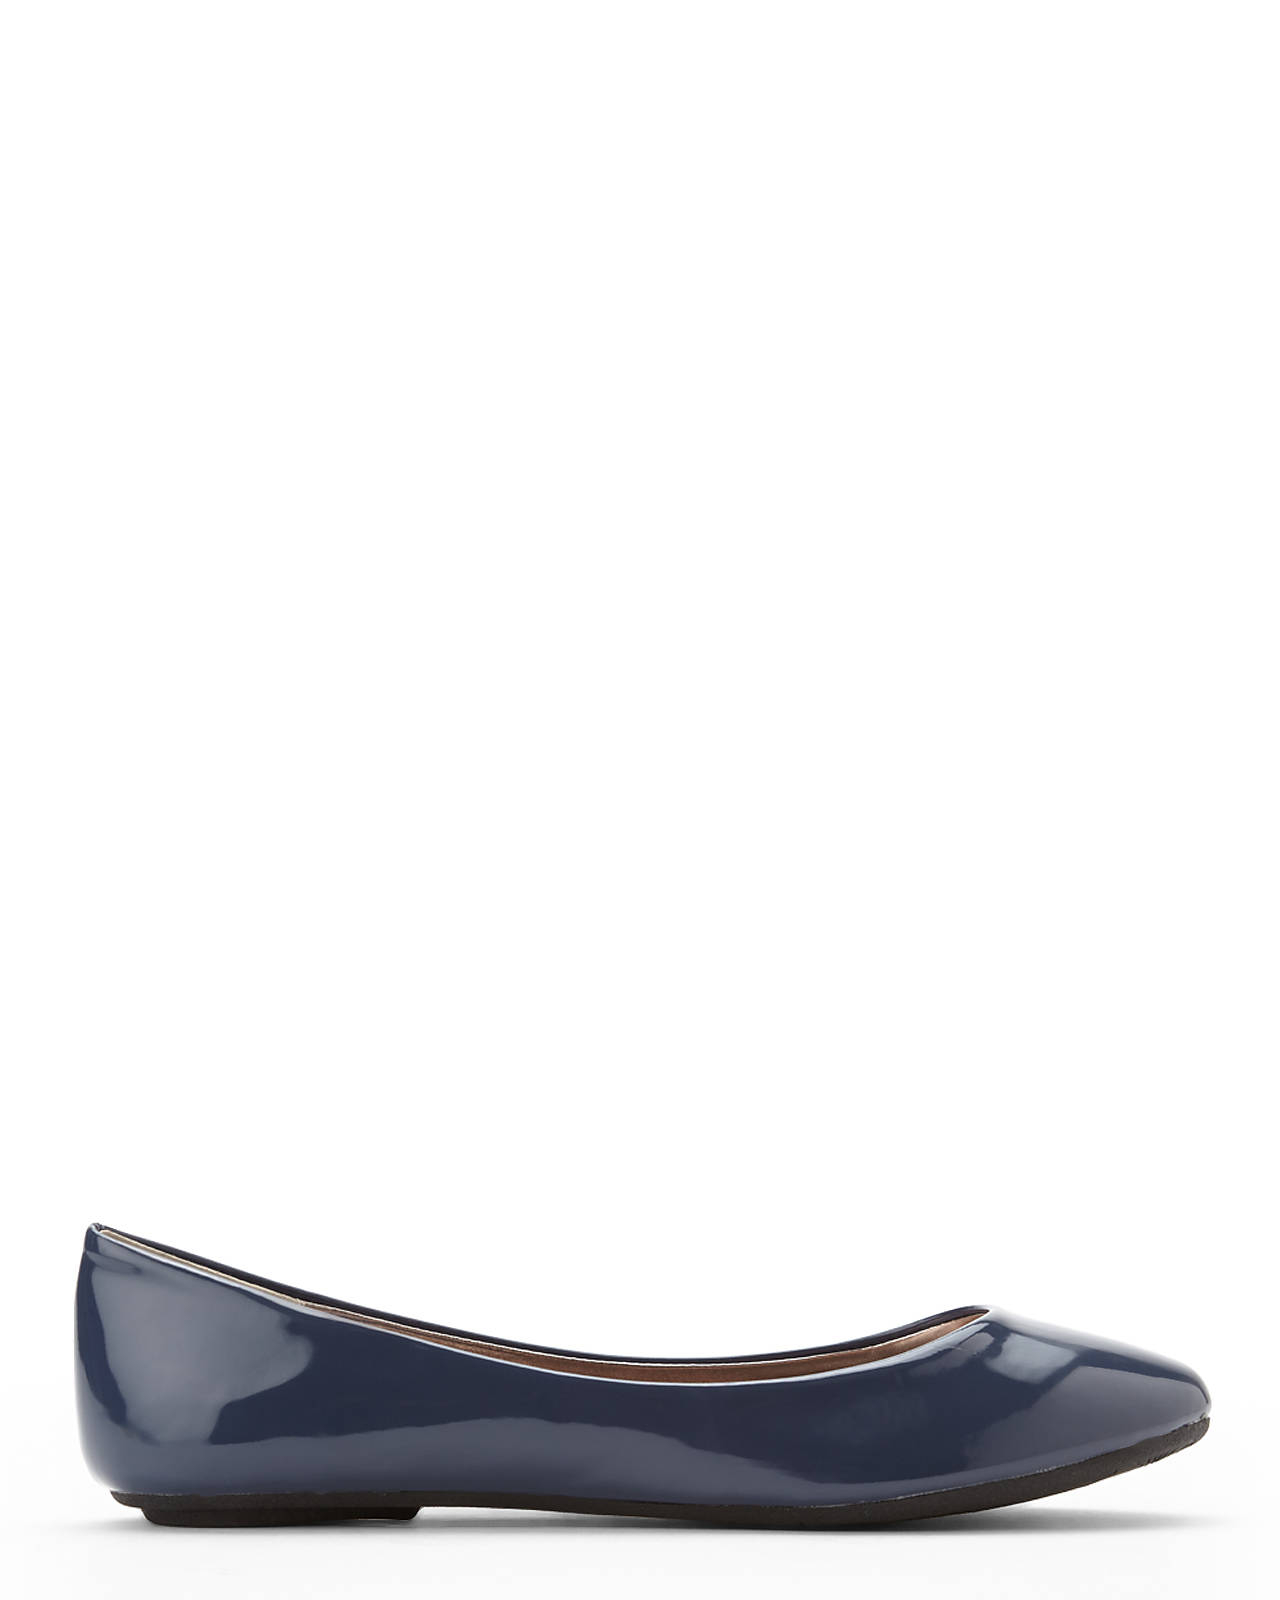 581b20a8933 Lyst - Steve Madden Slate Blue Patent Flats in Gray